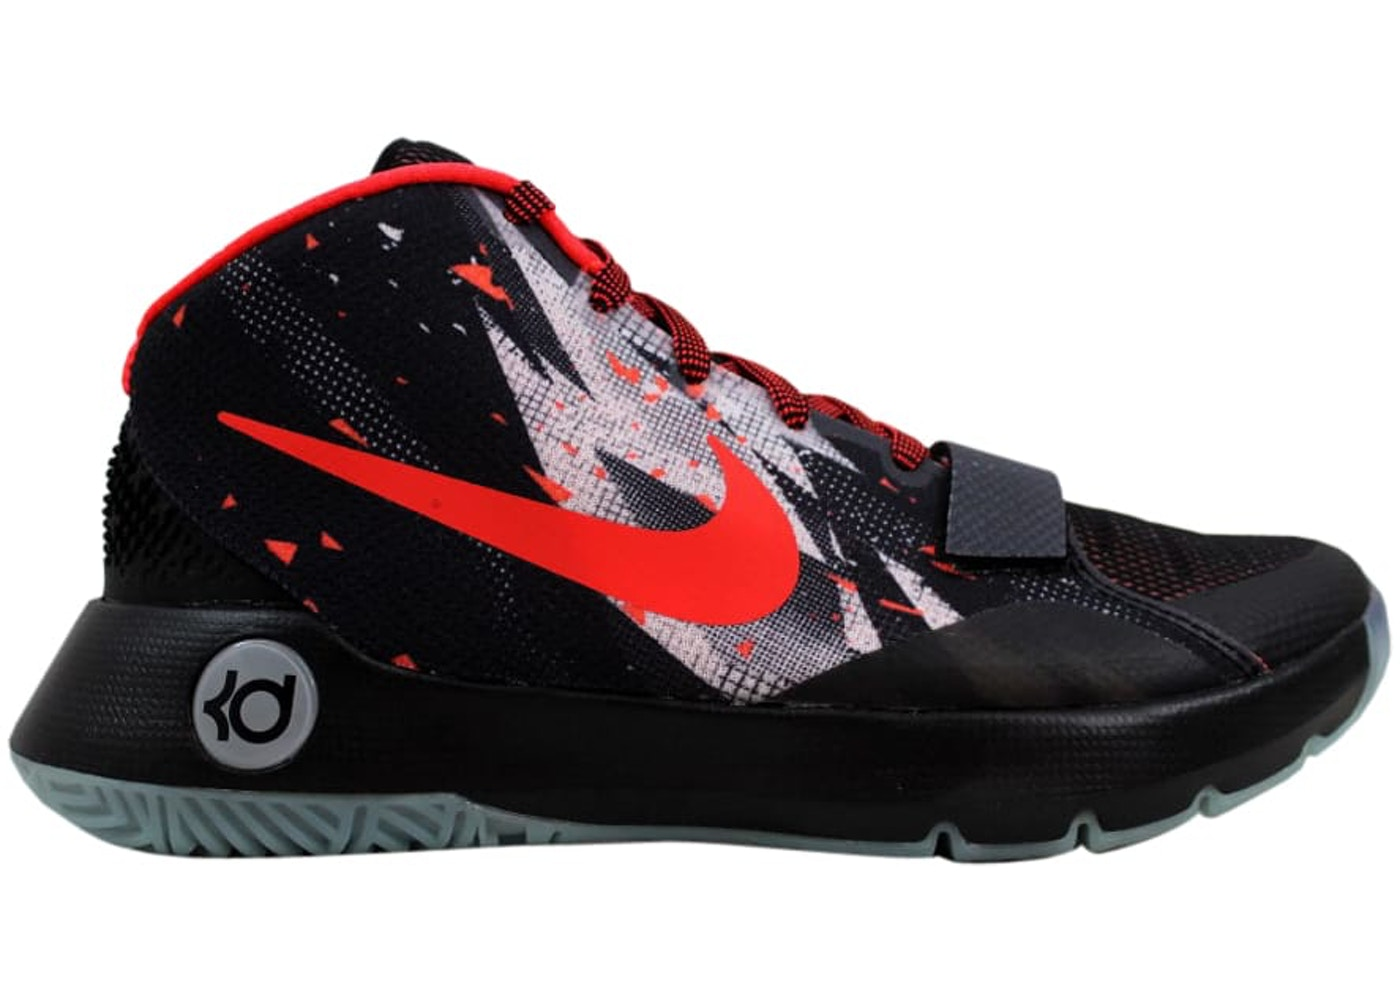 new style 5100a 891dc Sell. or Ask. Size --. View All Bids. Nike KD Trey 5 ...